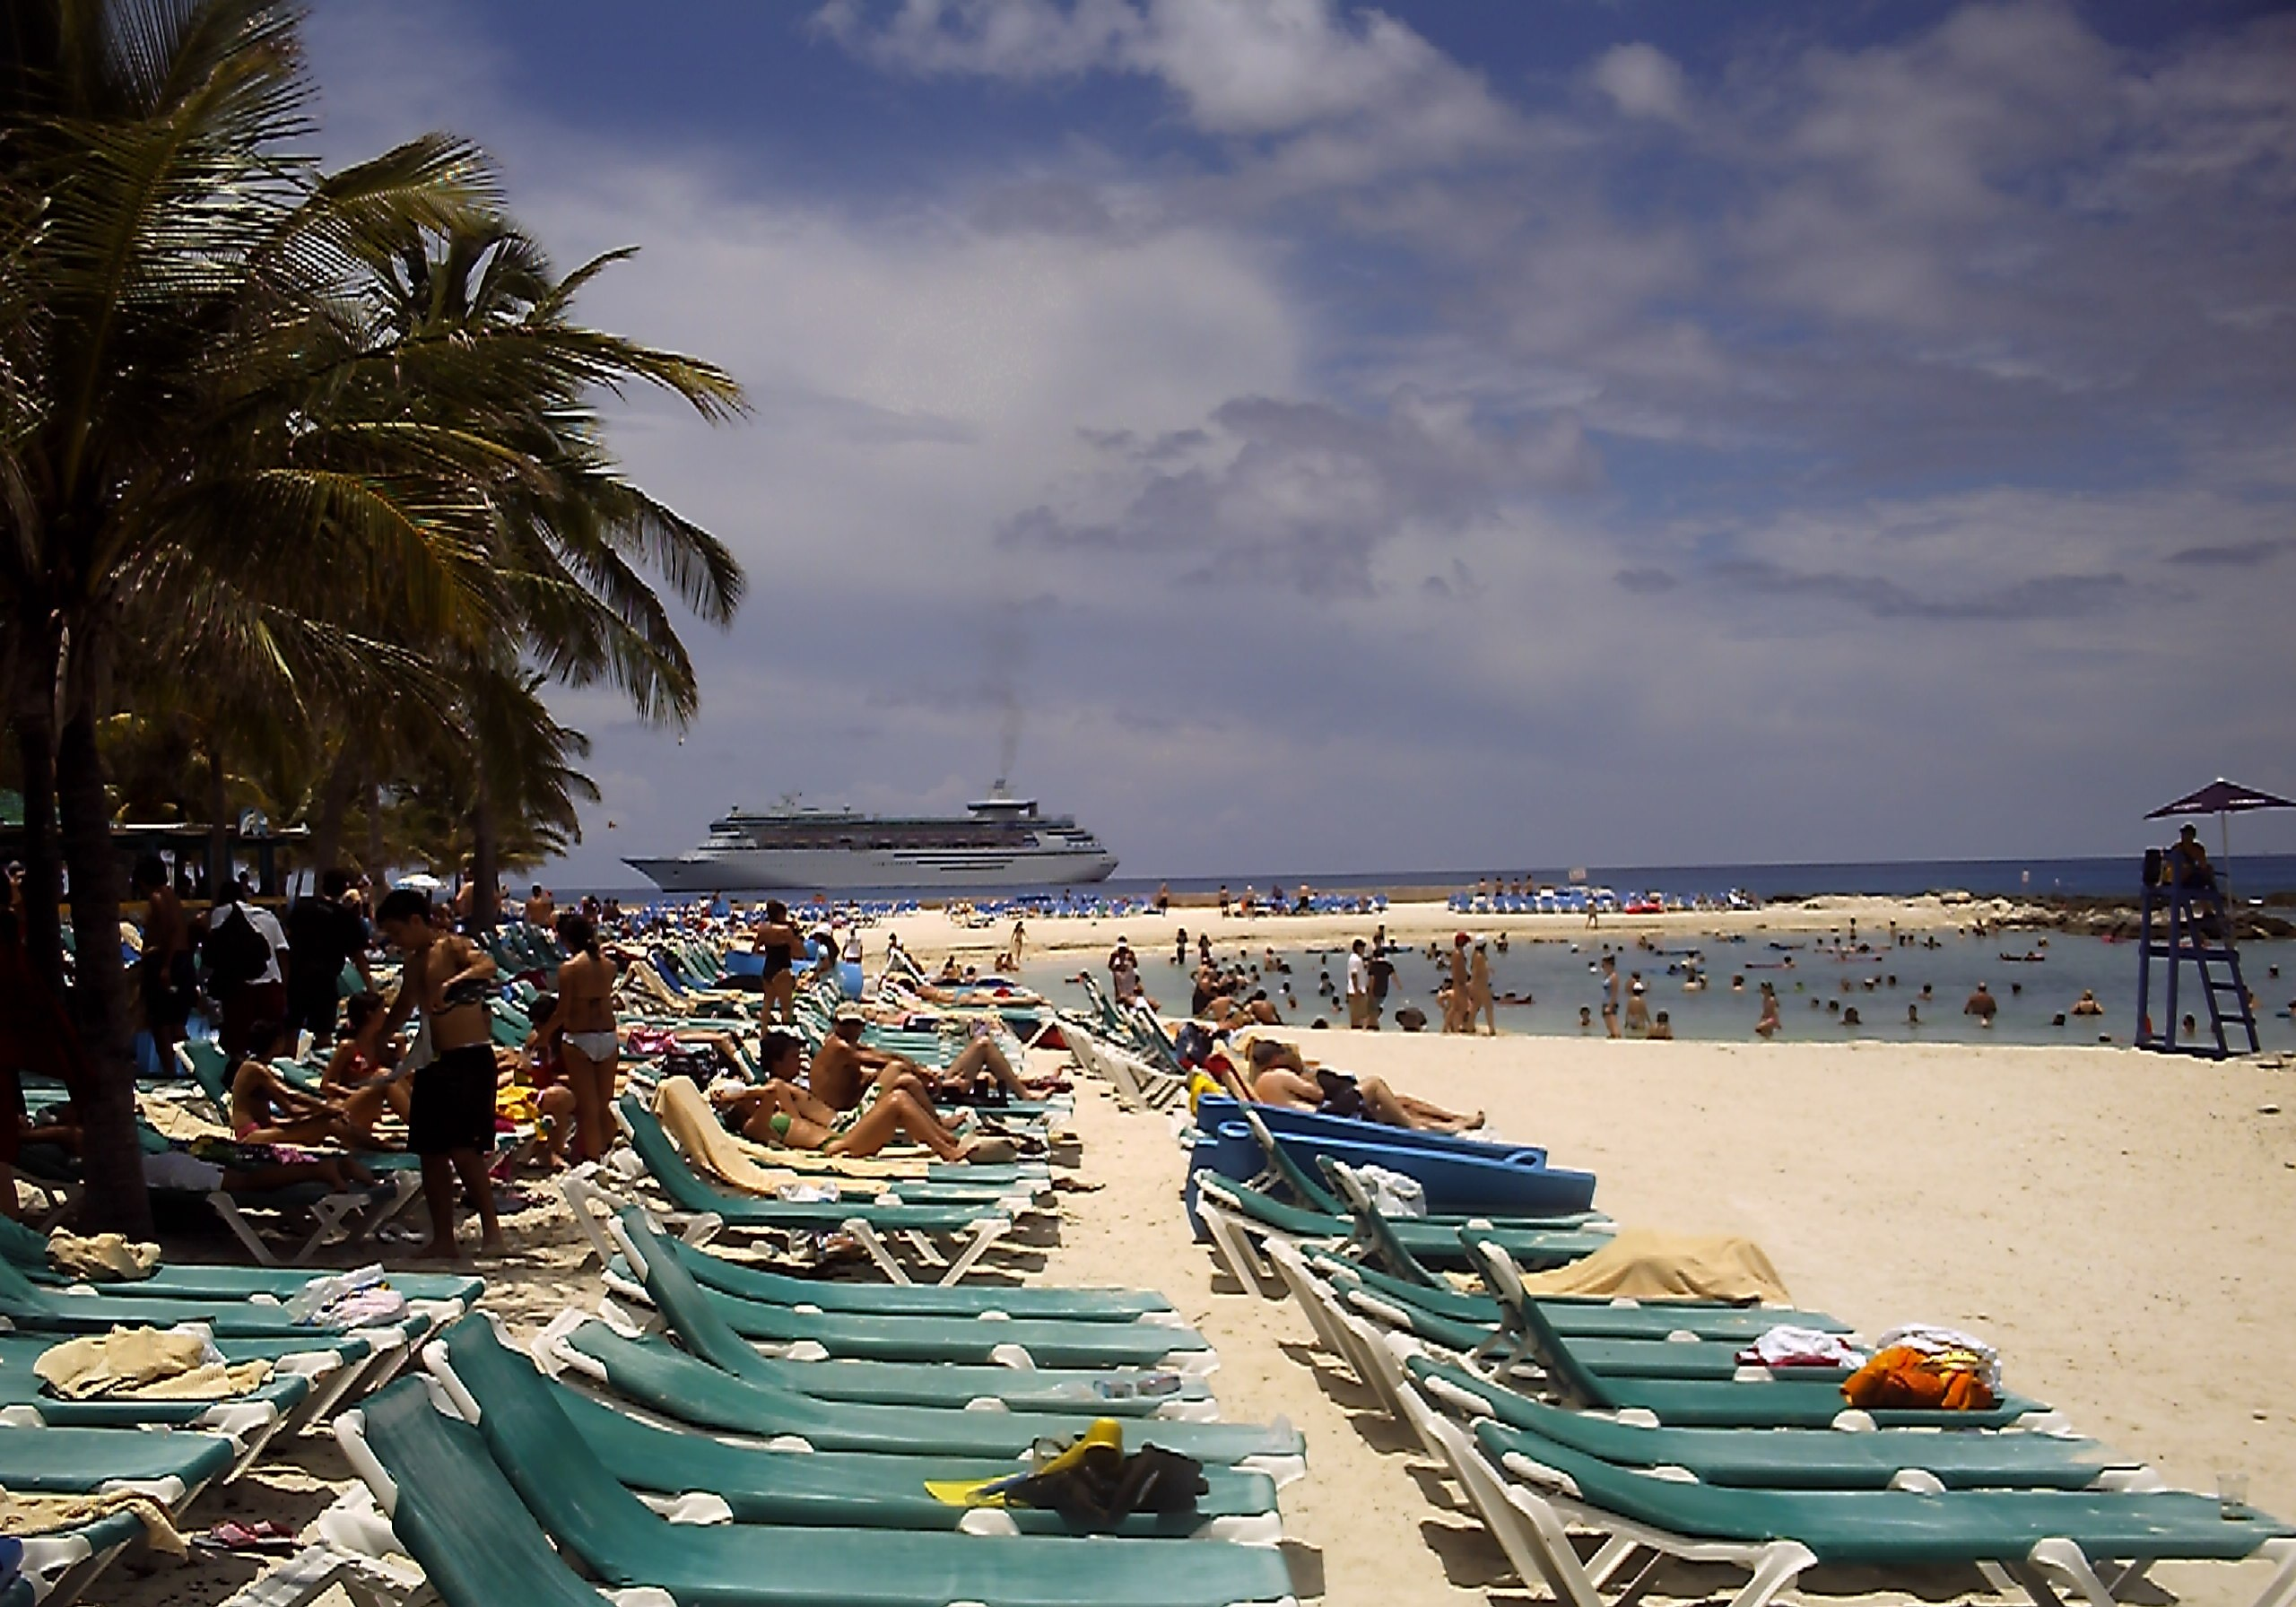 This is the beach on Coco Cay with the cruise ship docked in the distance.